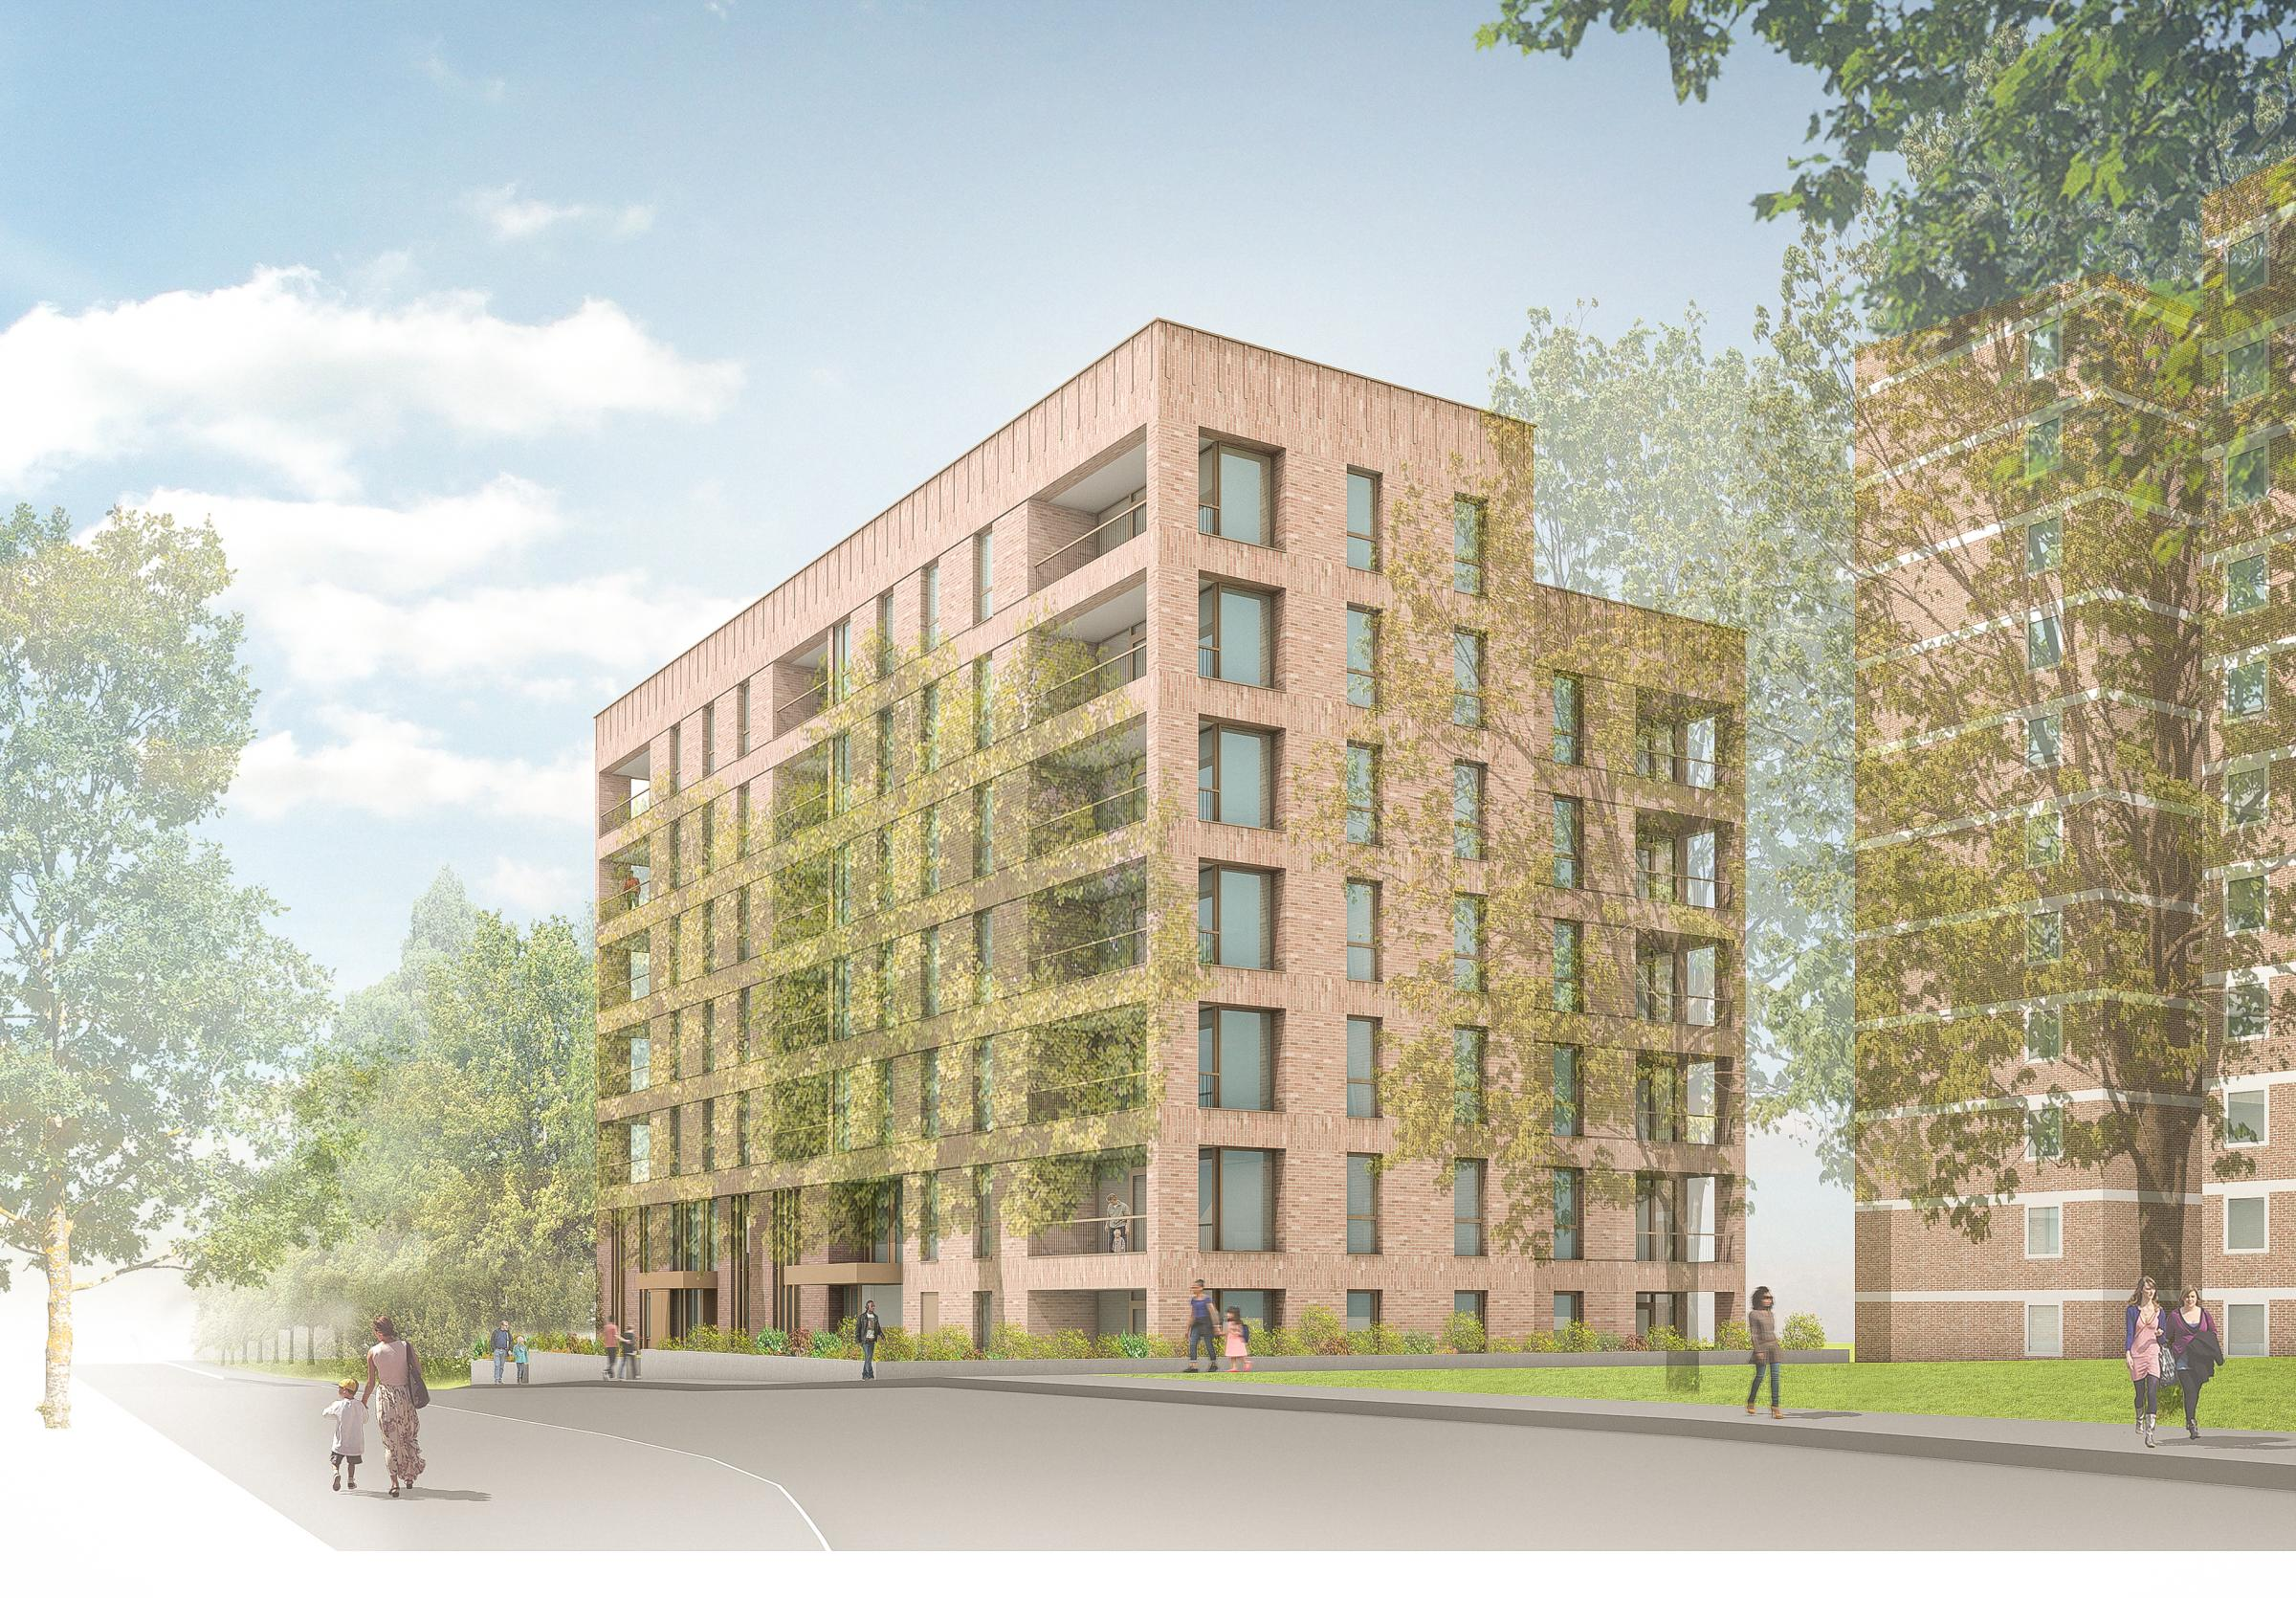 Council homes for homeless families approved in Lewisham - News Shopper